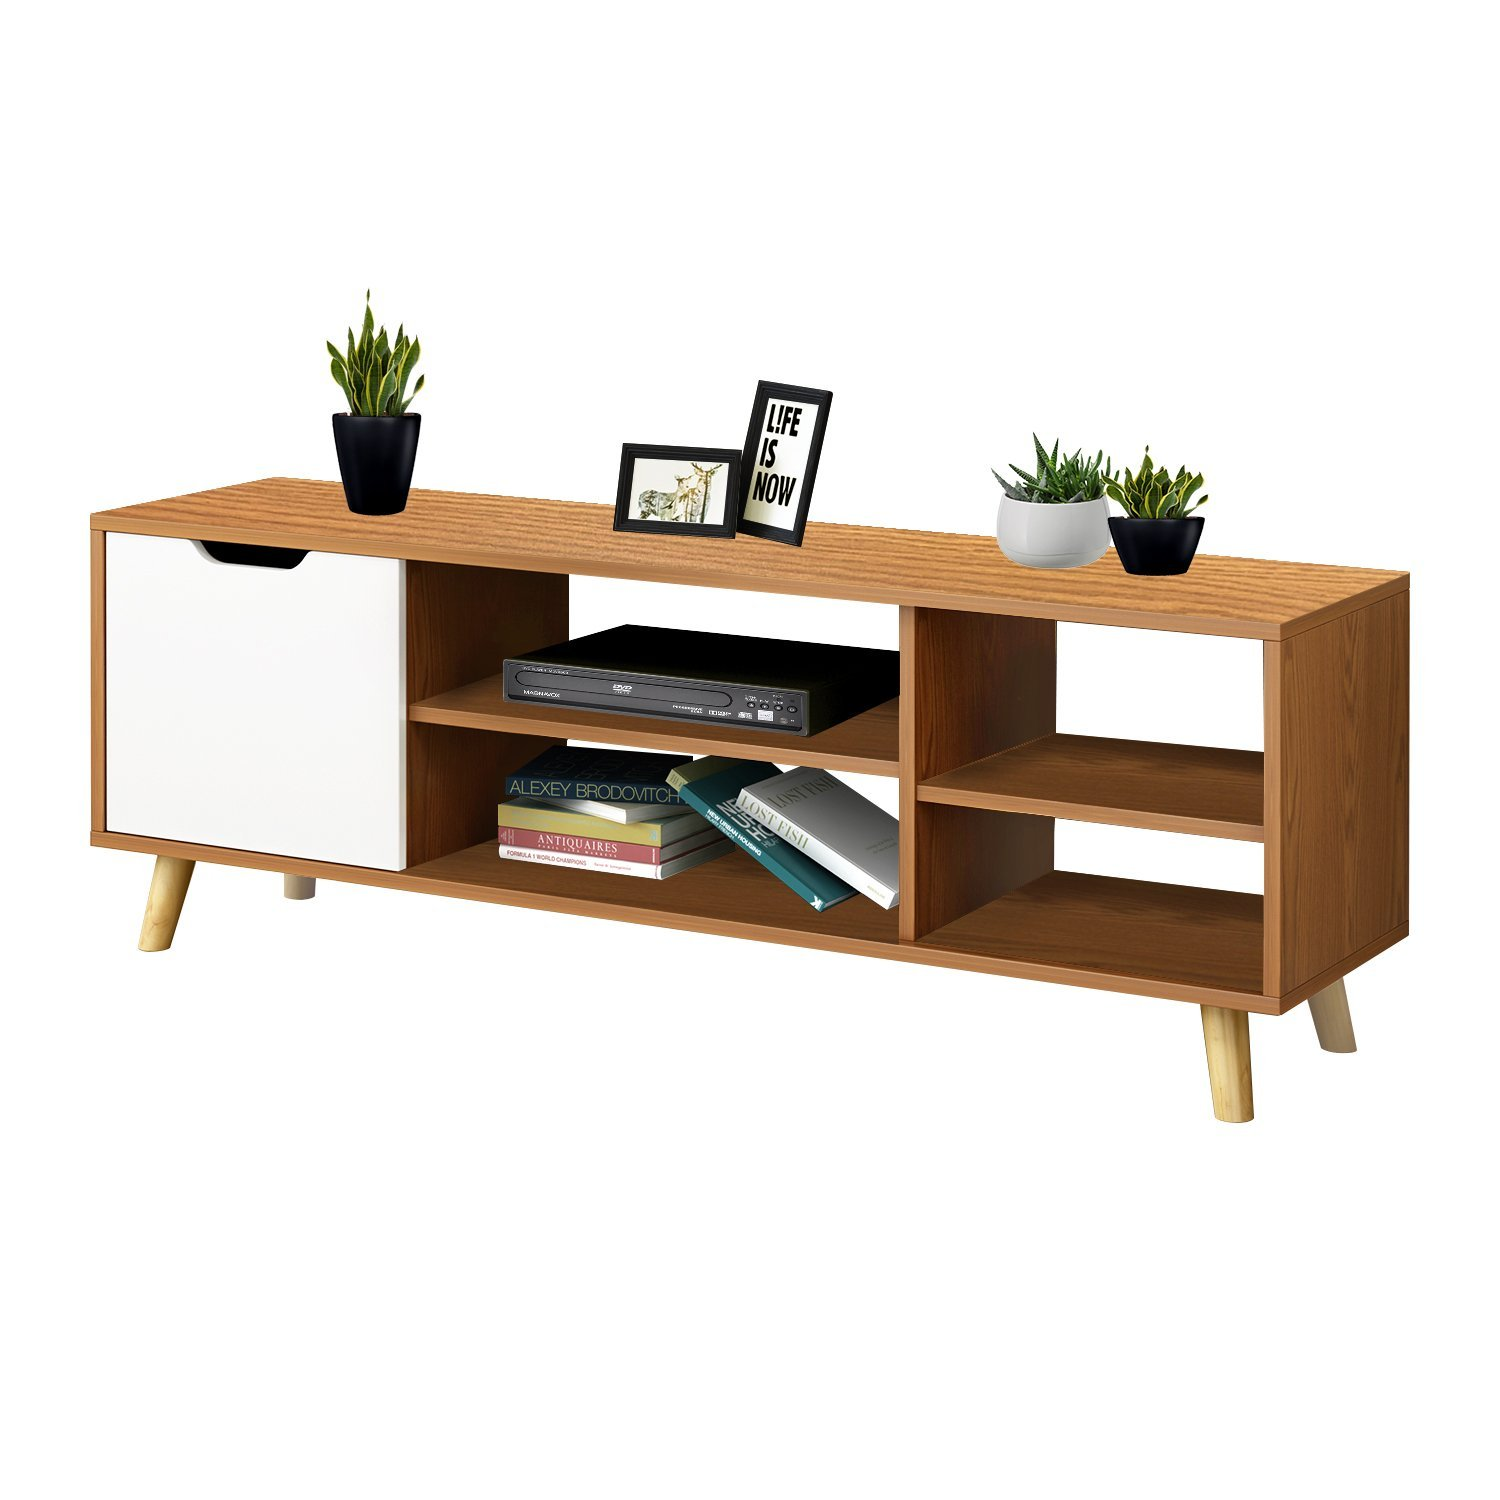 Jerry & Maggie - TV Monitor Stand Computer Stand Shelf Storage Multi Function Organize House Decor Furniture Living room Desk - Natural Wood Tone